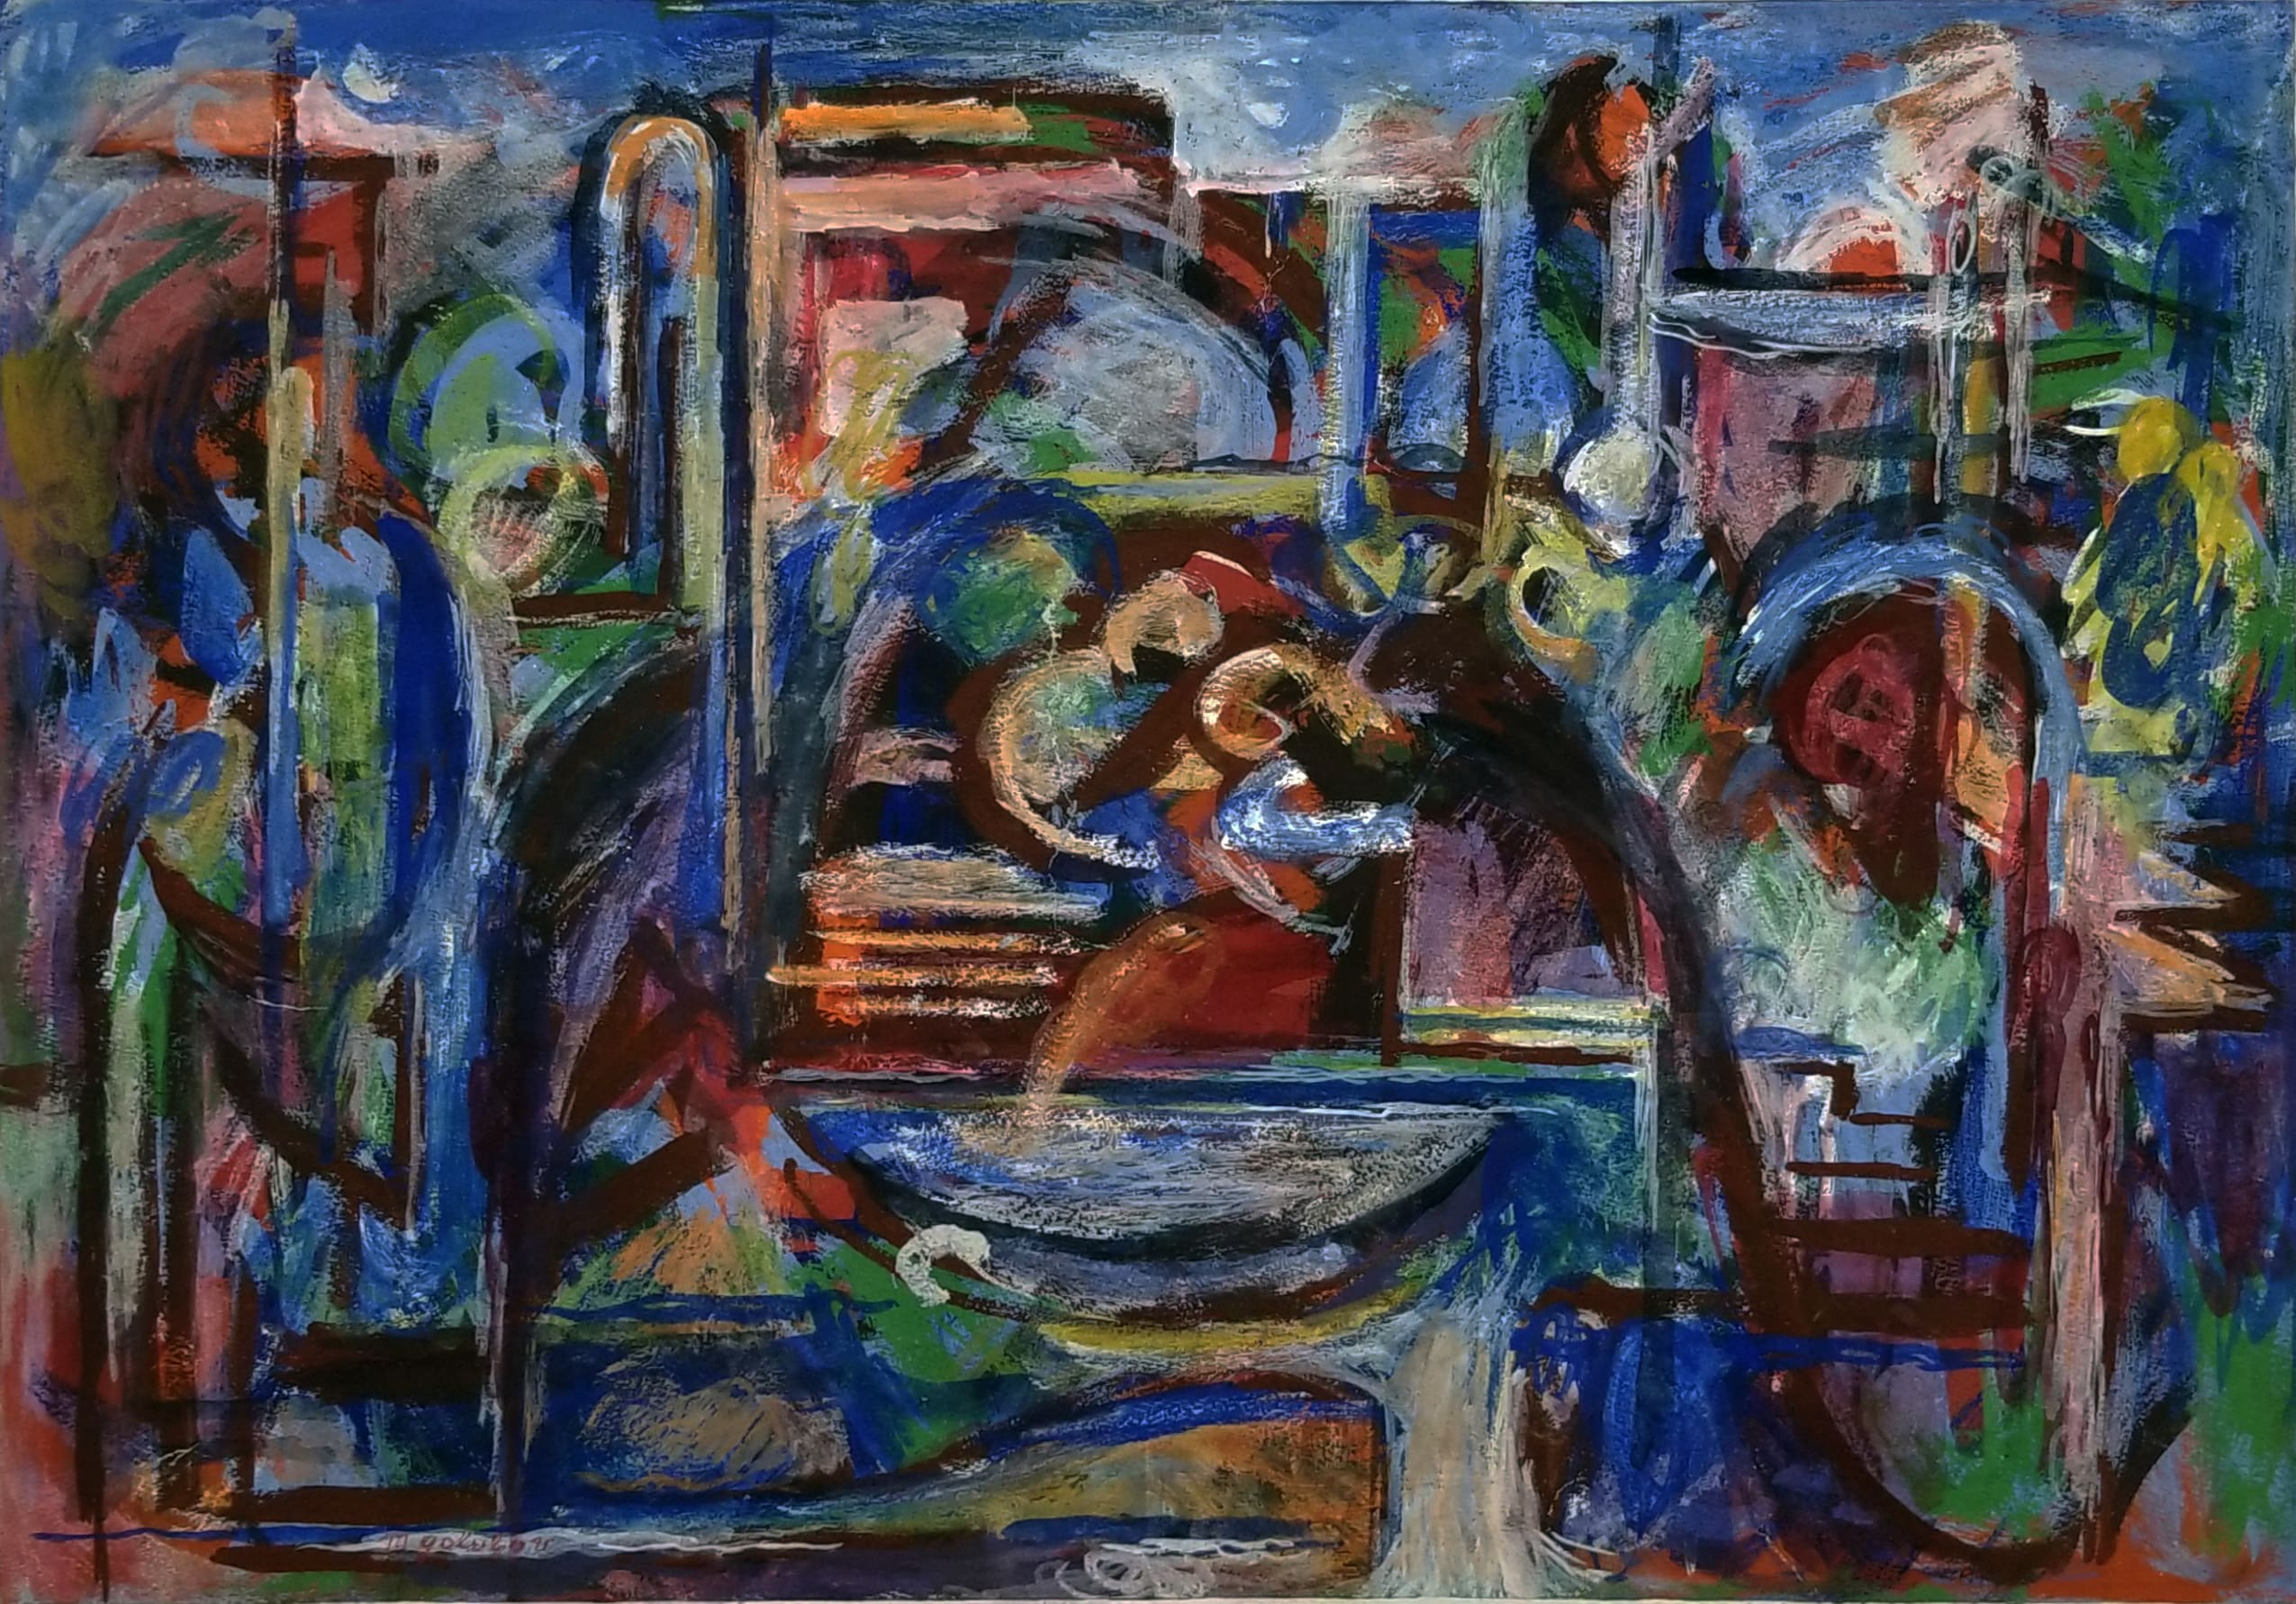 Maurice Golubov Abstractions - Blue Nocturnal